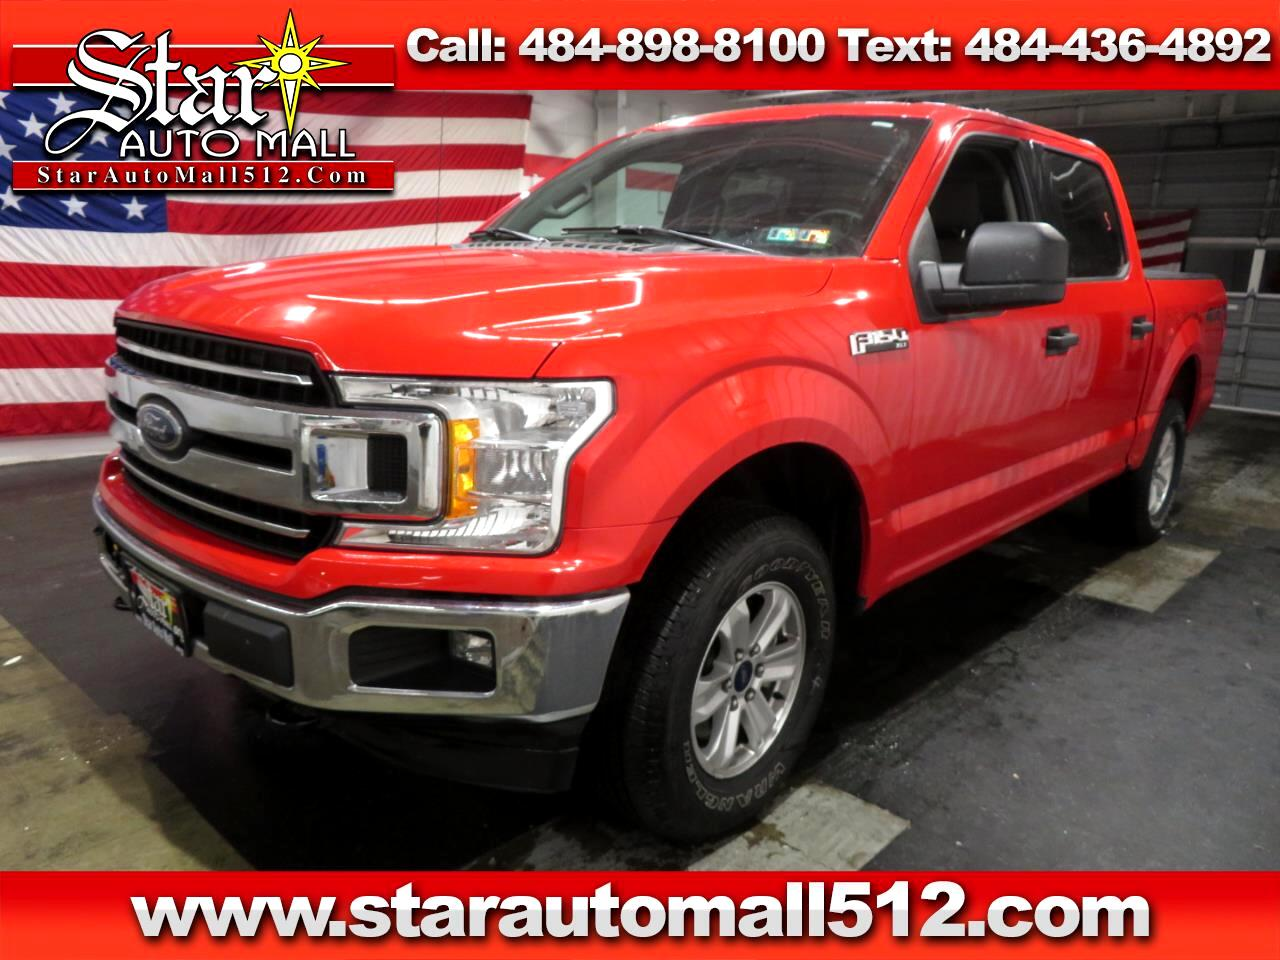 2018 Ford F-150 4WD SuperCab 145